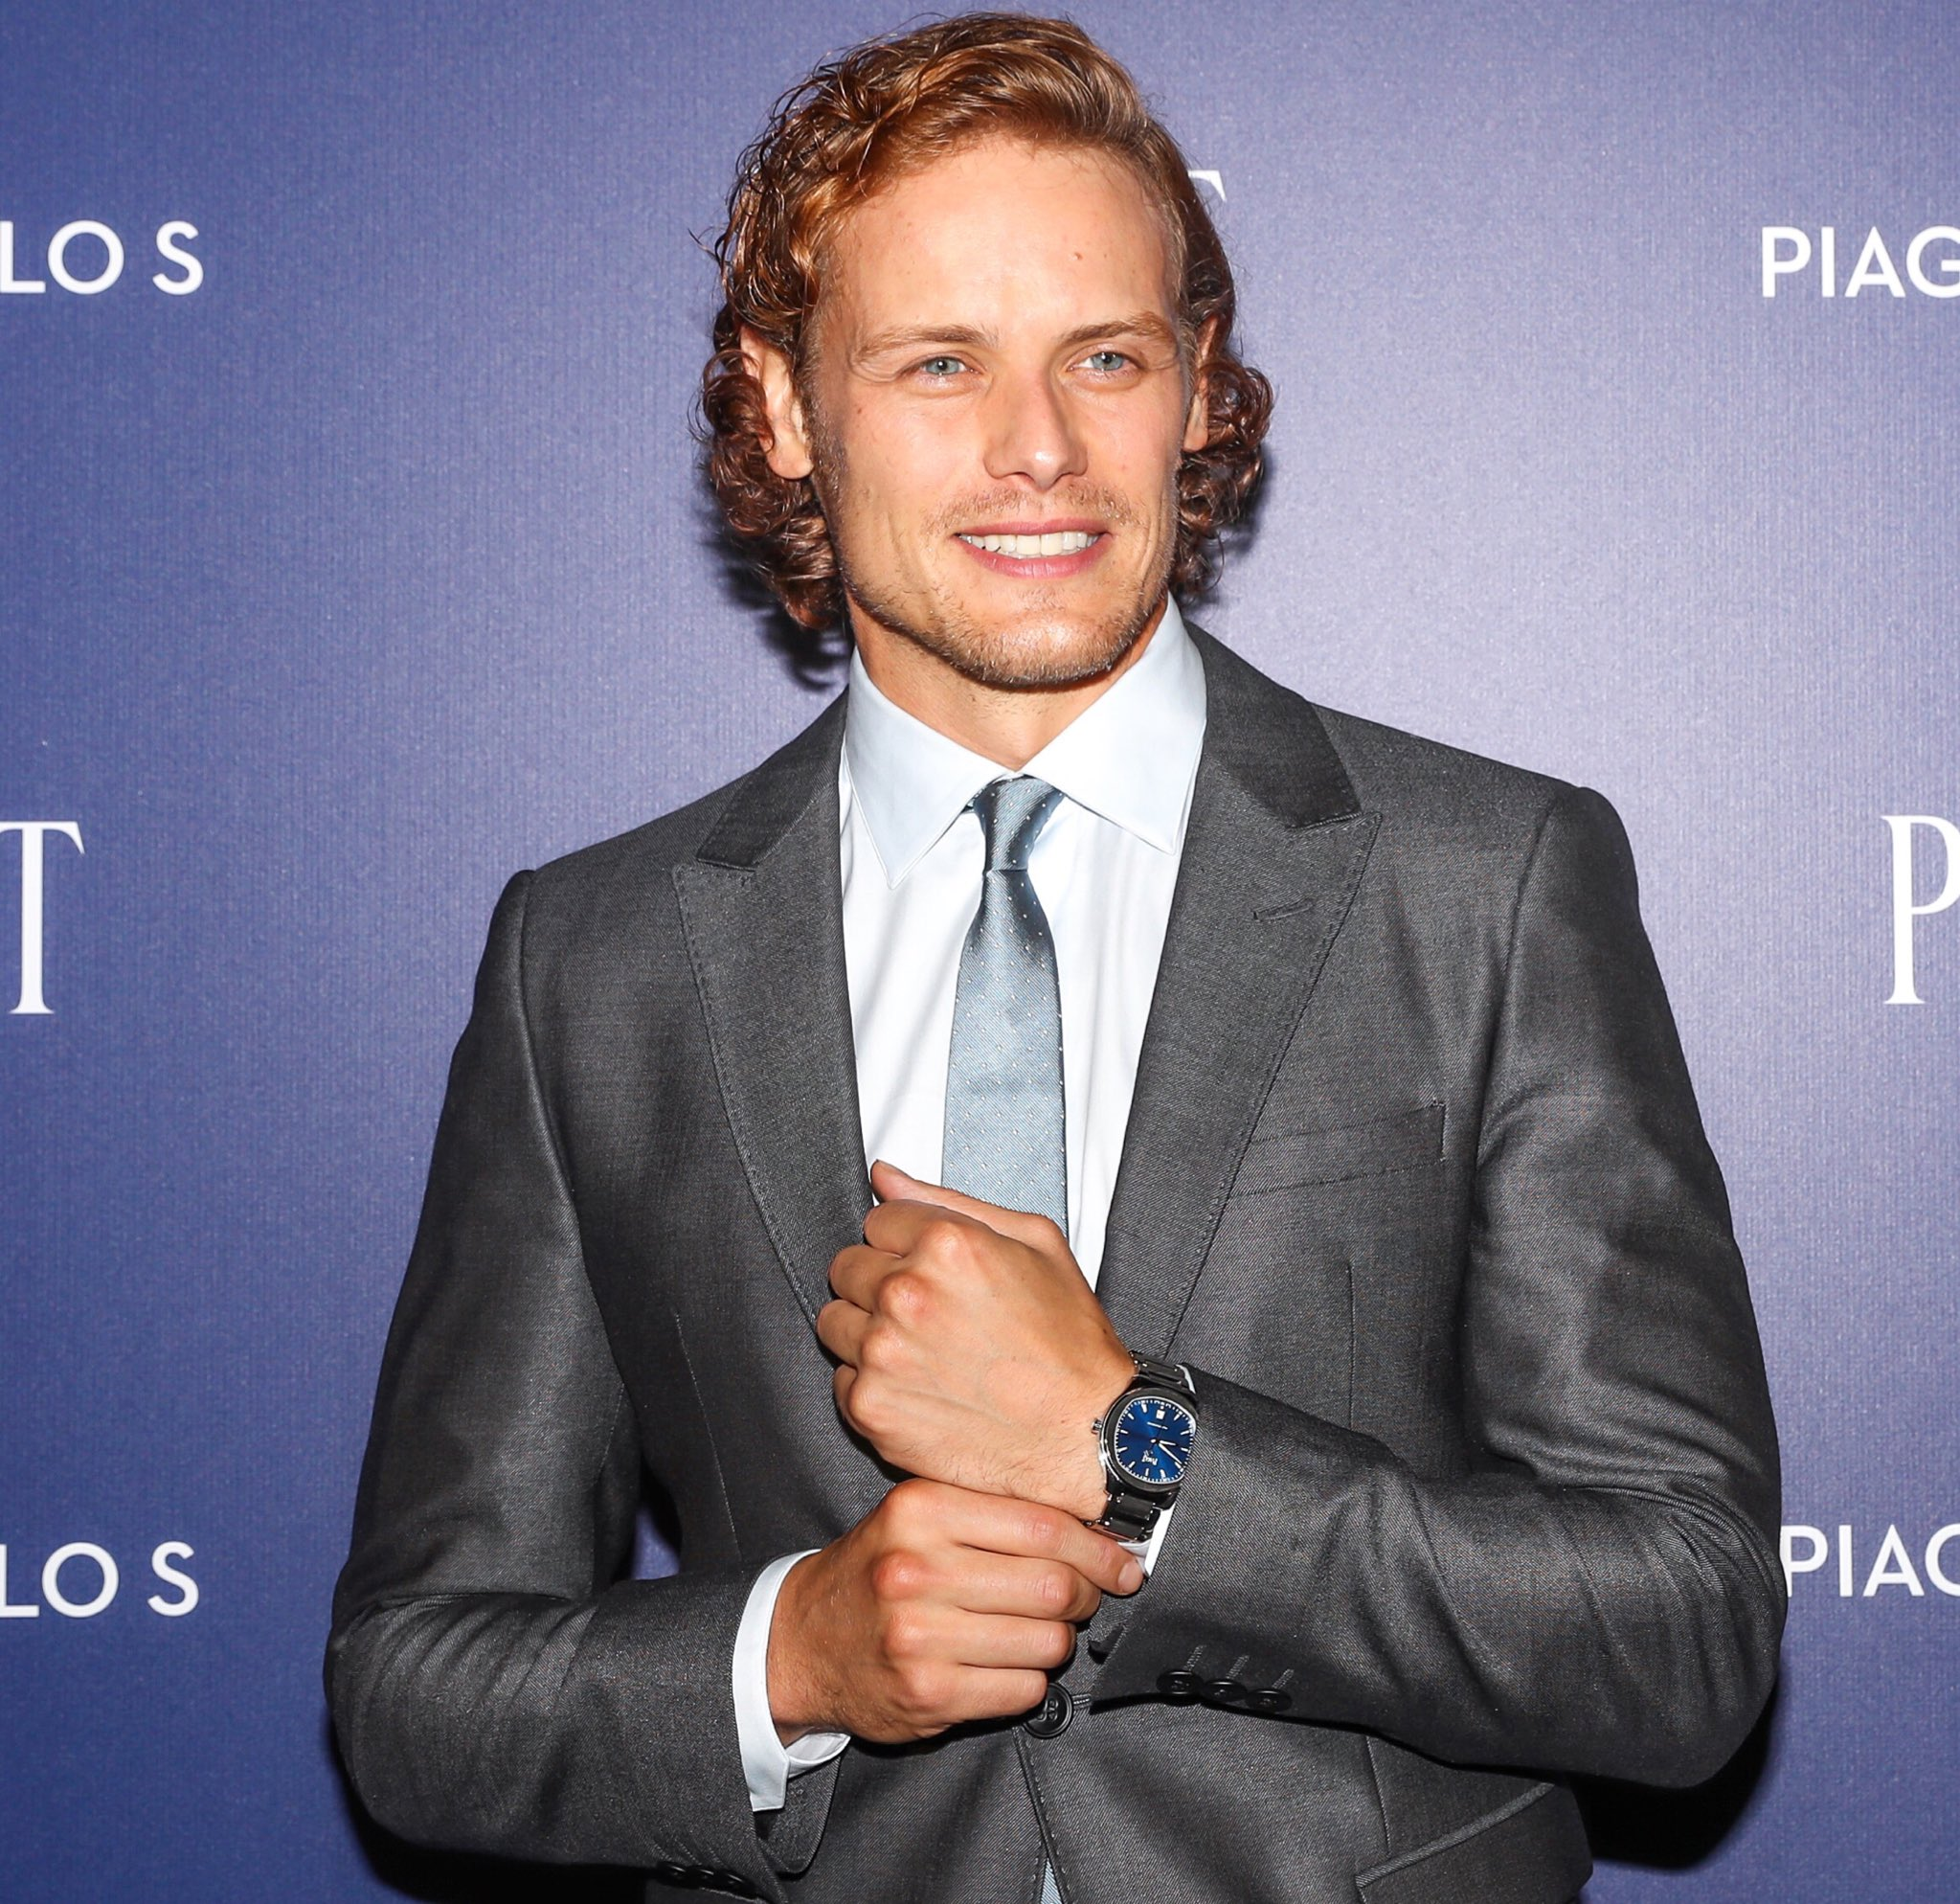 #tbt @SamHeughan rocking the automatic blue dial #PiagetPoloS at the #nyc launch event https://t.co/PTmzEL1fVv